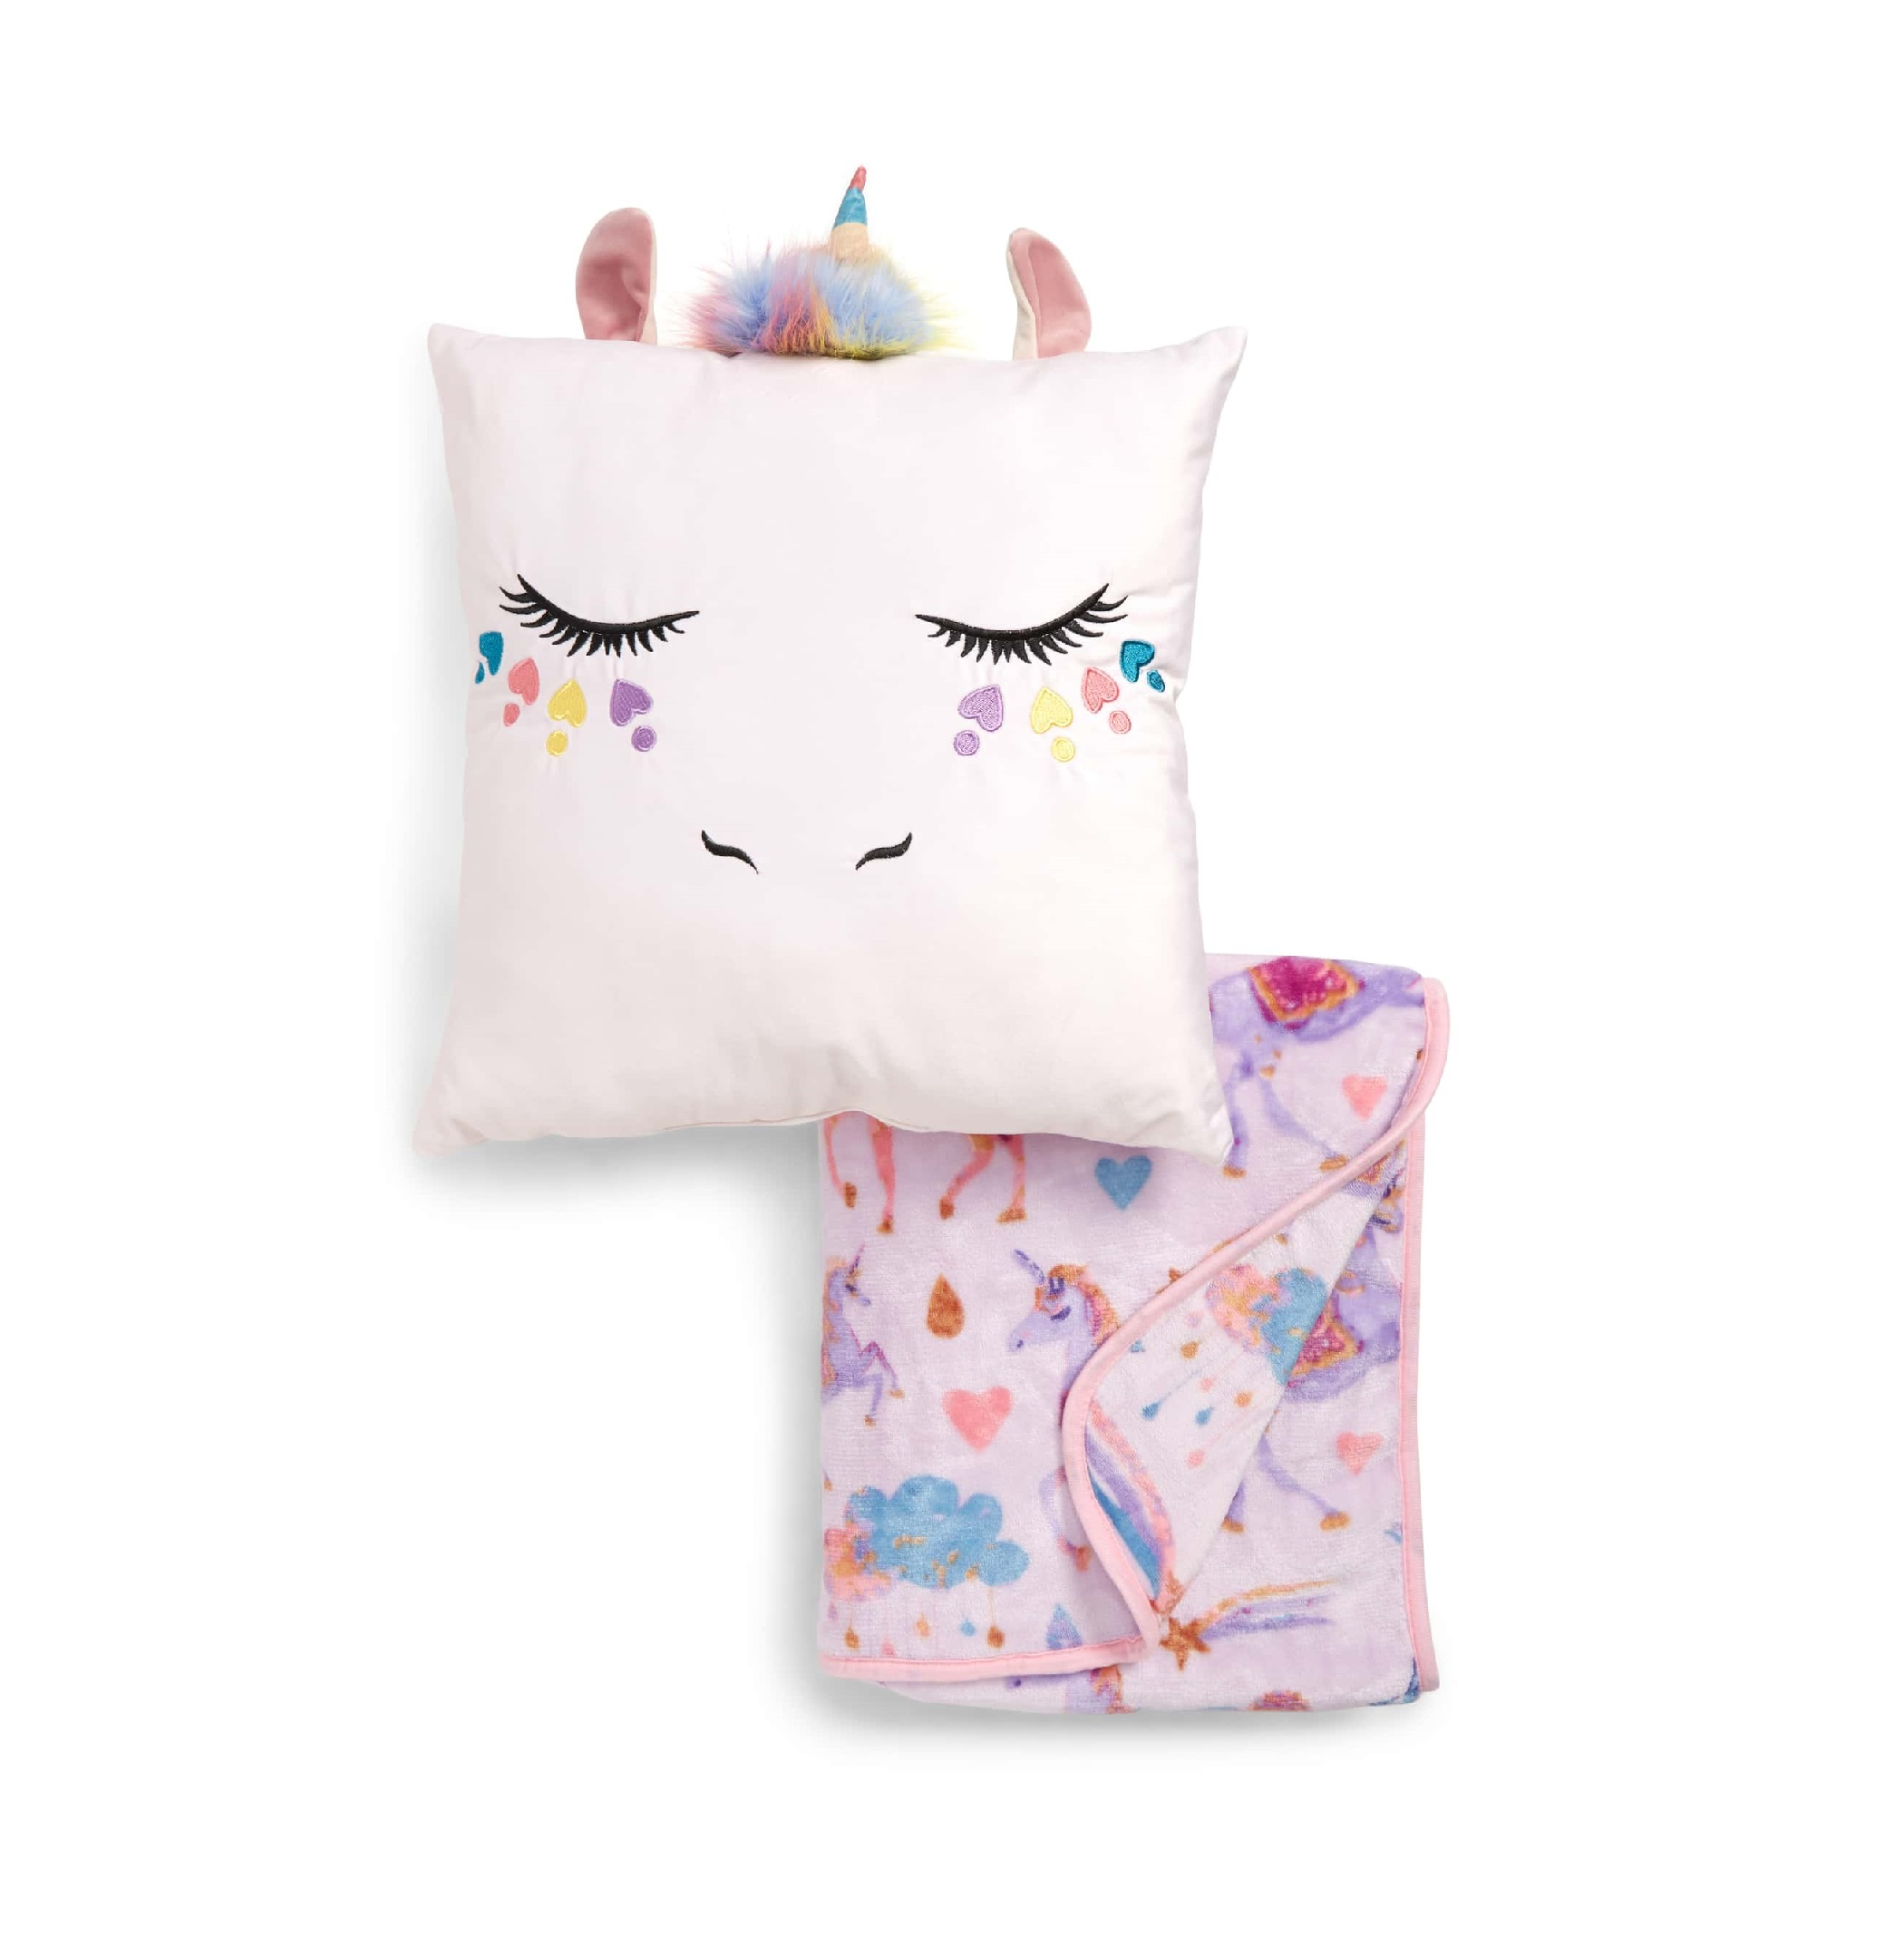 Under One Sky Unicorn Pillow & Blanket Set